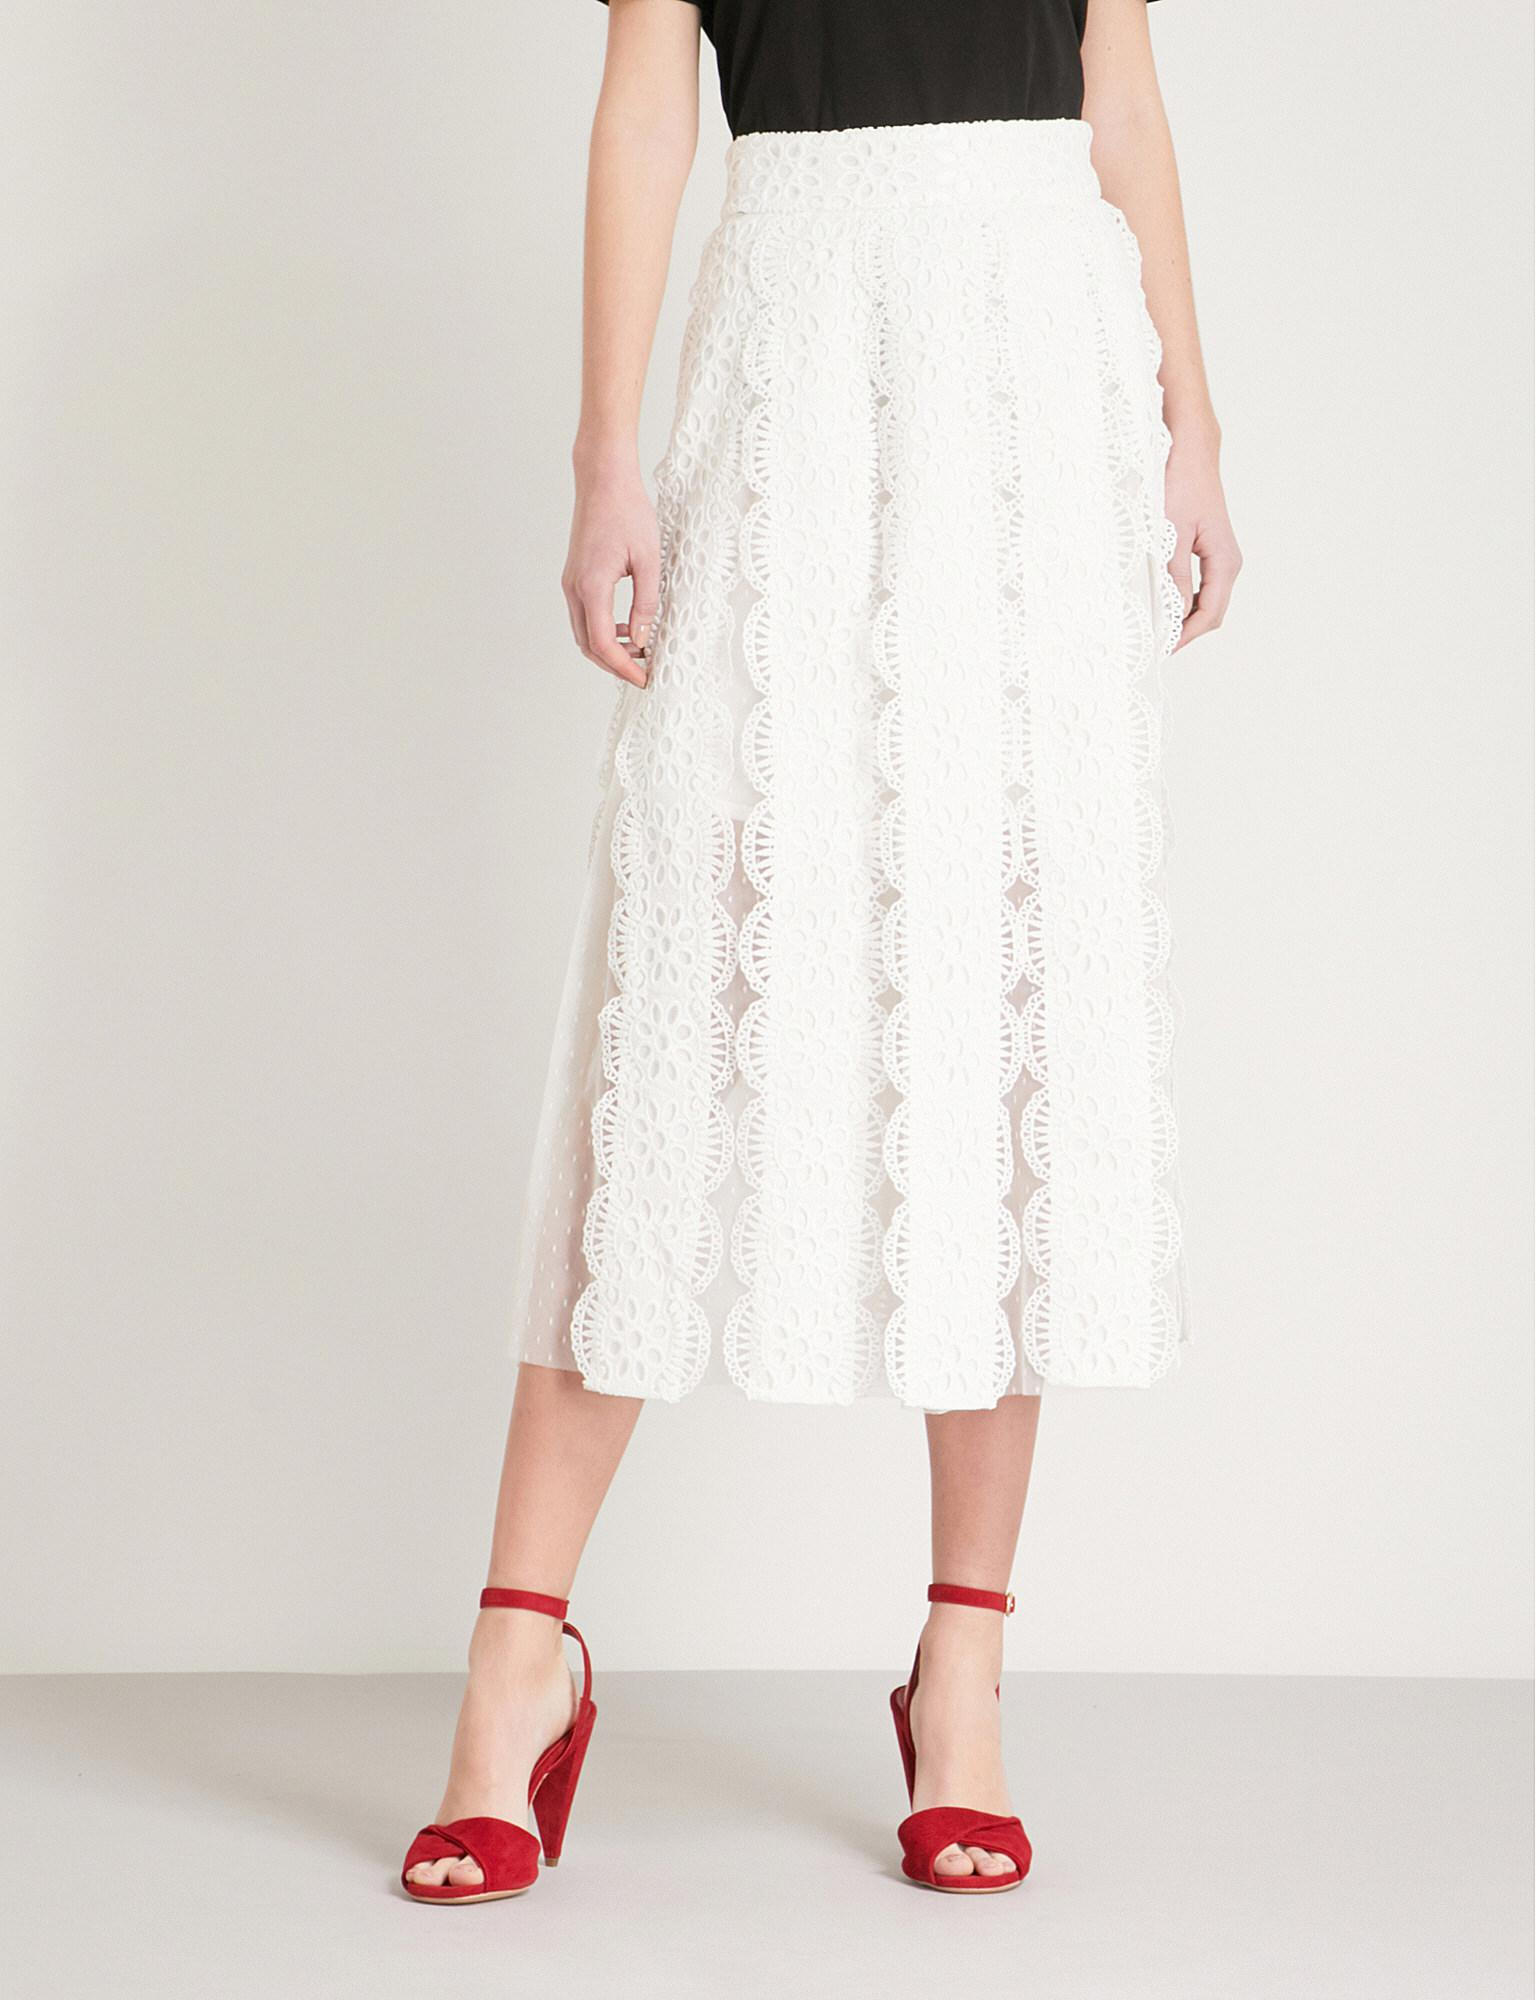 bddac5752d Maje Janila Lace And Mesh Skirt in White - Lyst